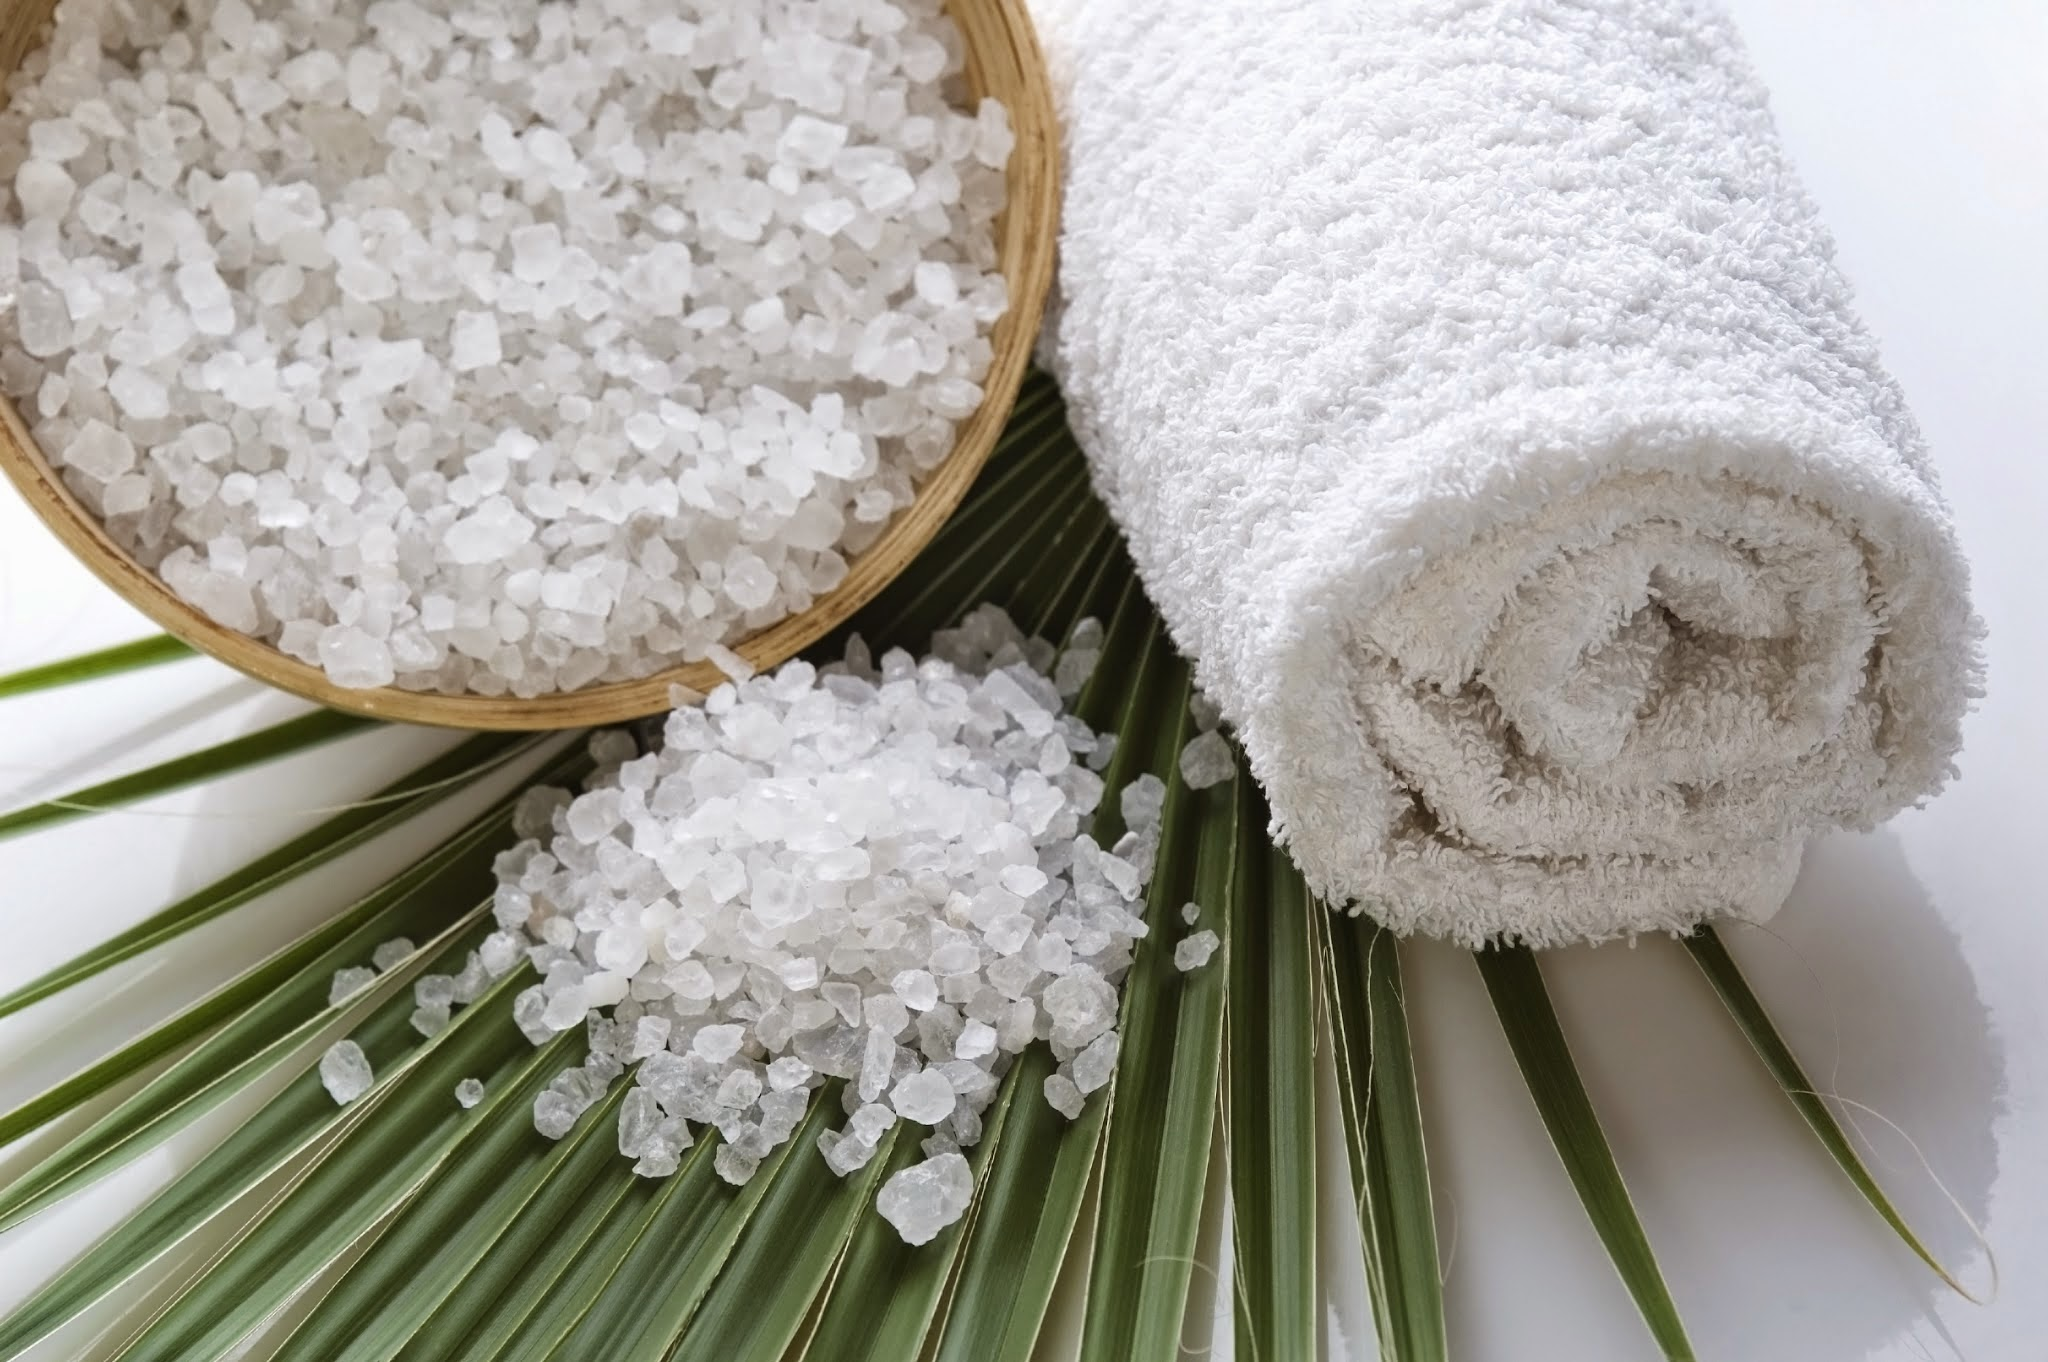 Inexpensive Ways to Pamper Mom on Mother's Day  via www.productreviewmom.com